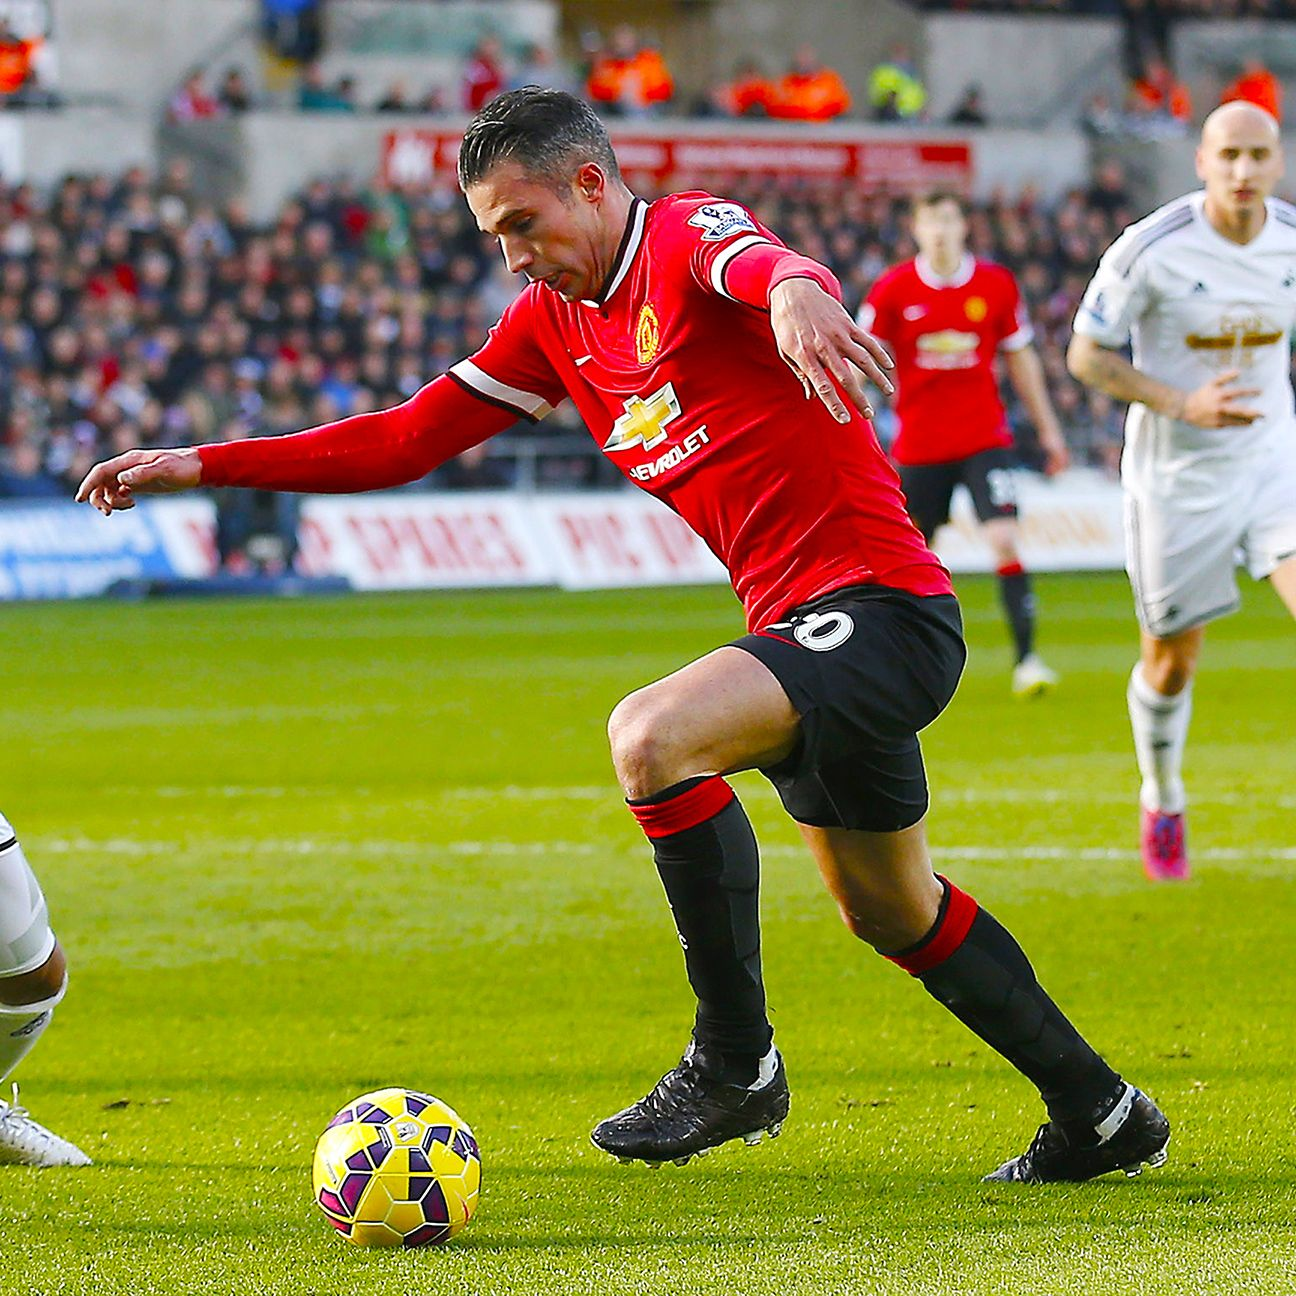 Robin van Persie turned in another hapless performance at Swansea, prompting further speculation that the Dutchman may be on his way out of the club this summer.